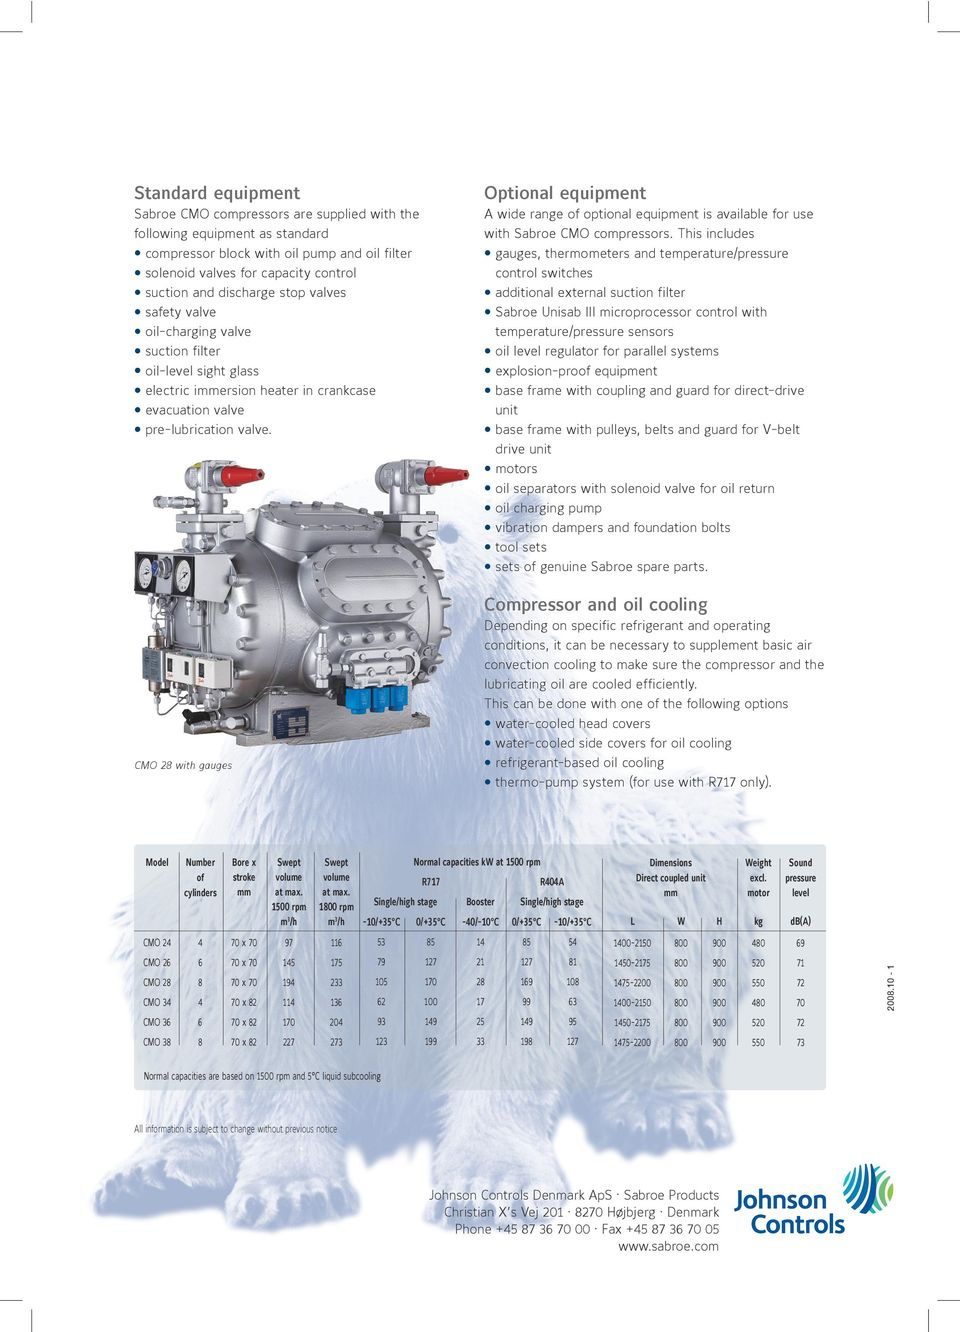 valve. A wide range of optional equipment is available for use with Sabroe CMO compressors.